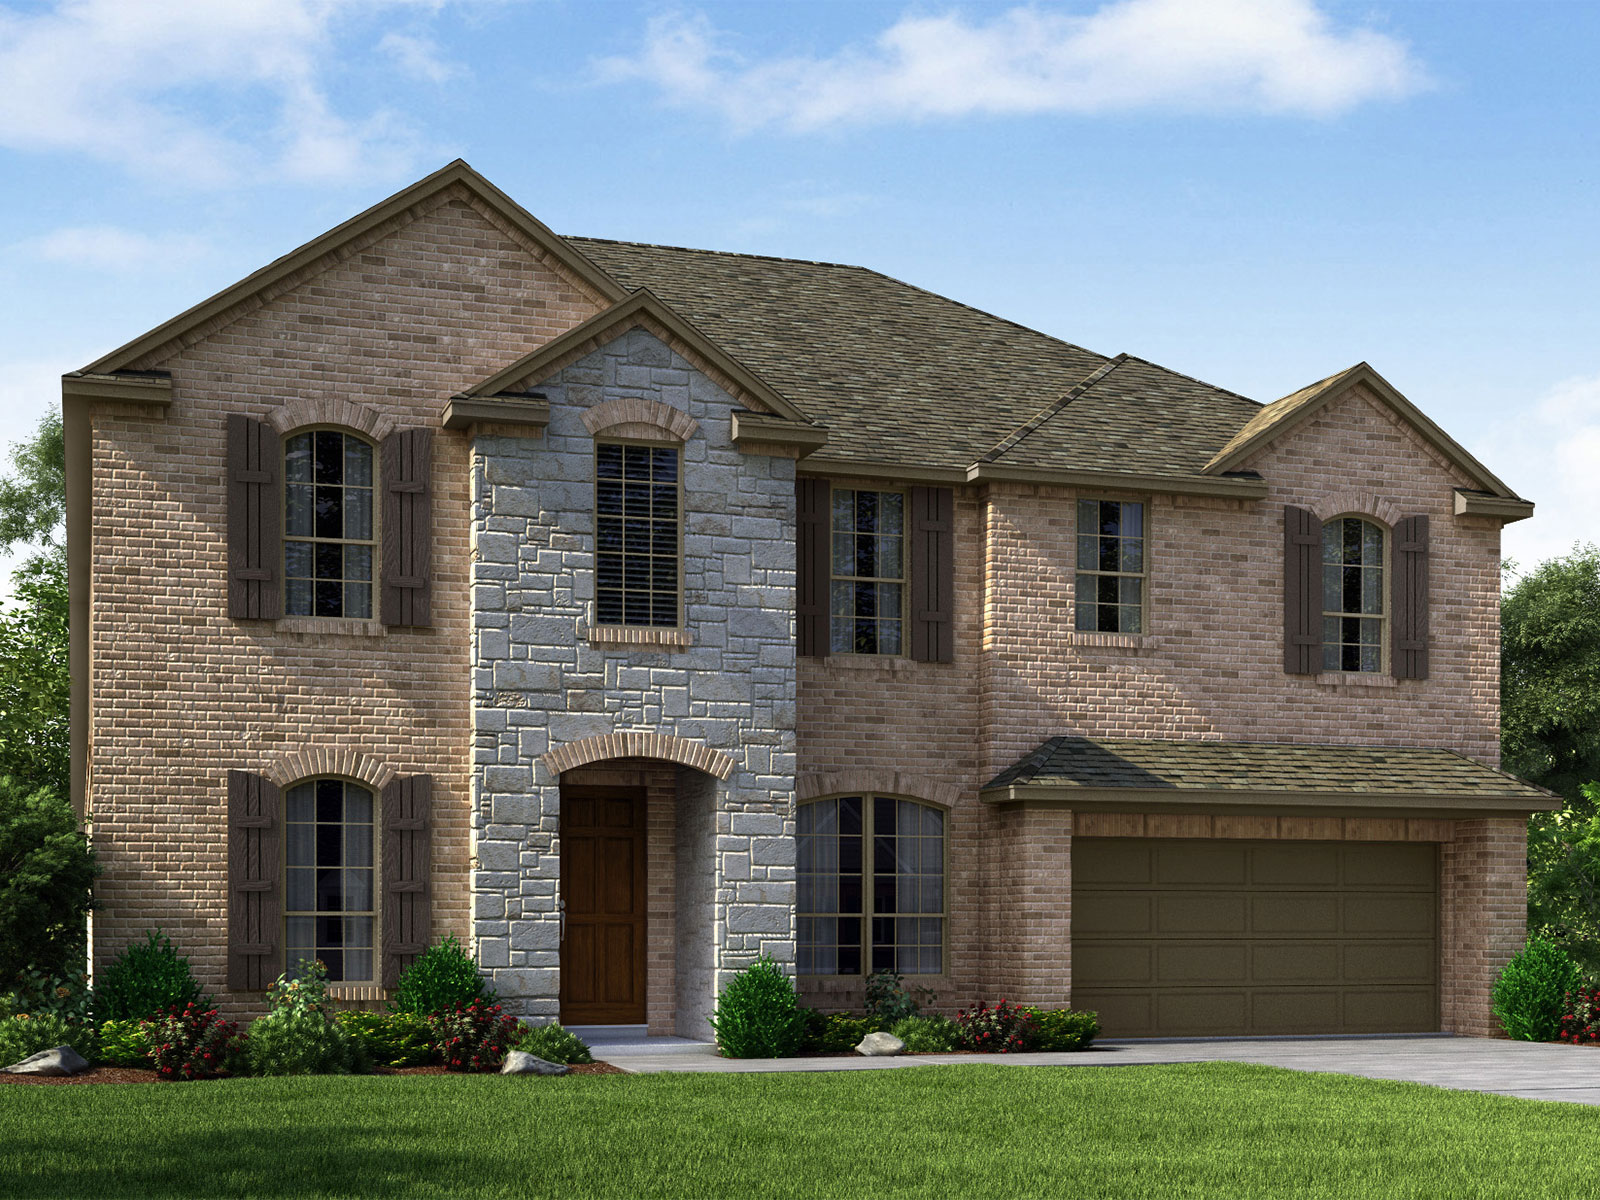 The periwinkle 9400 model 4br 3ba homes for sale in for Houston house elevation